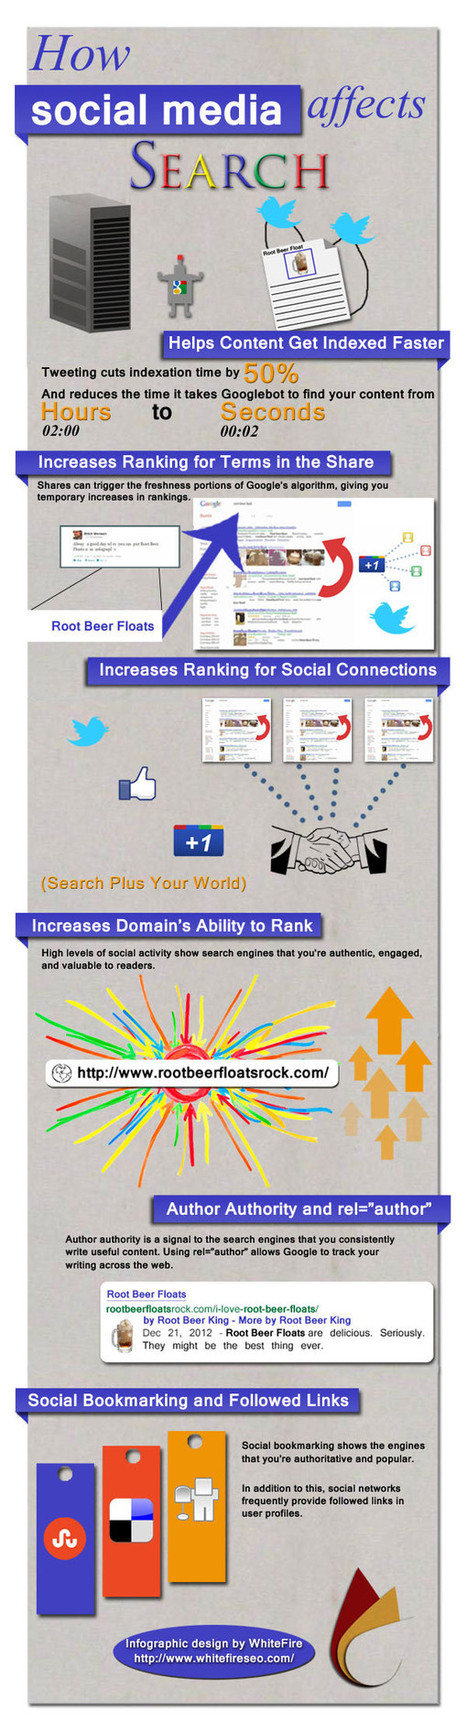 How Social Media Impacts SEO and Site Ranking: infographic | MarketingHits | Scoop.it